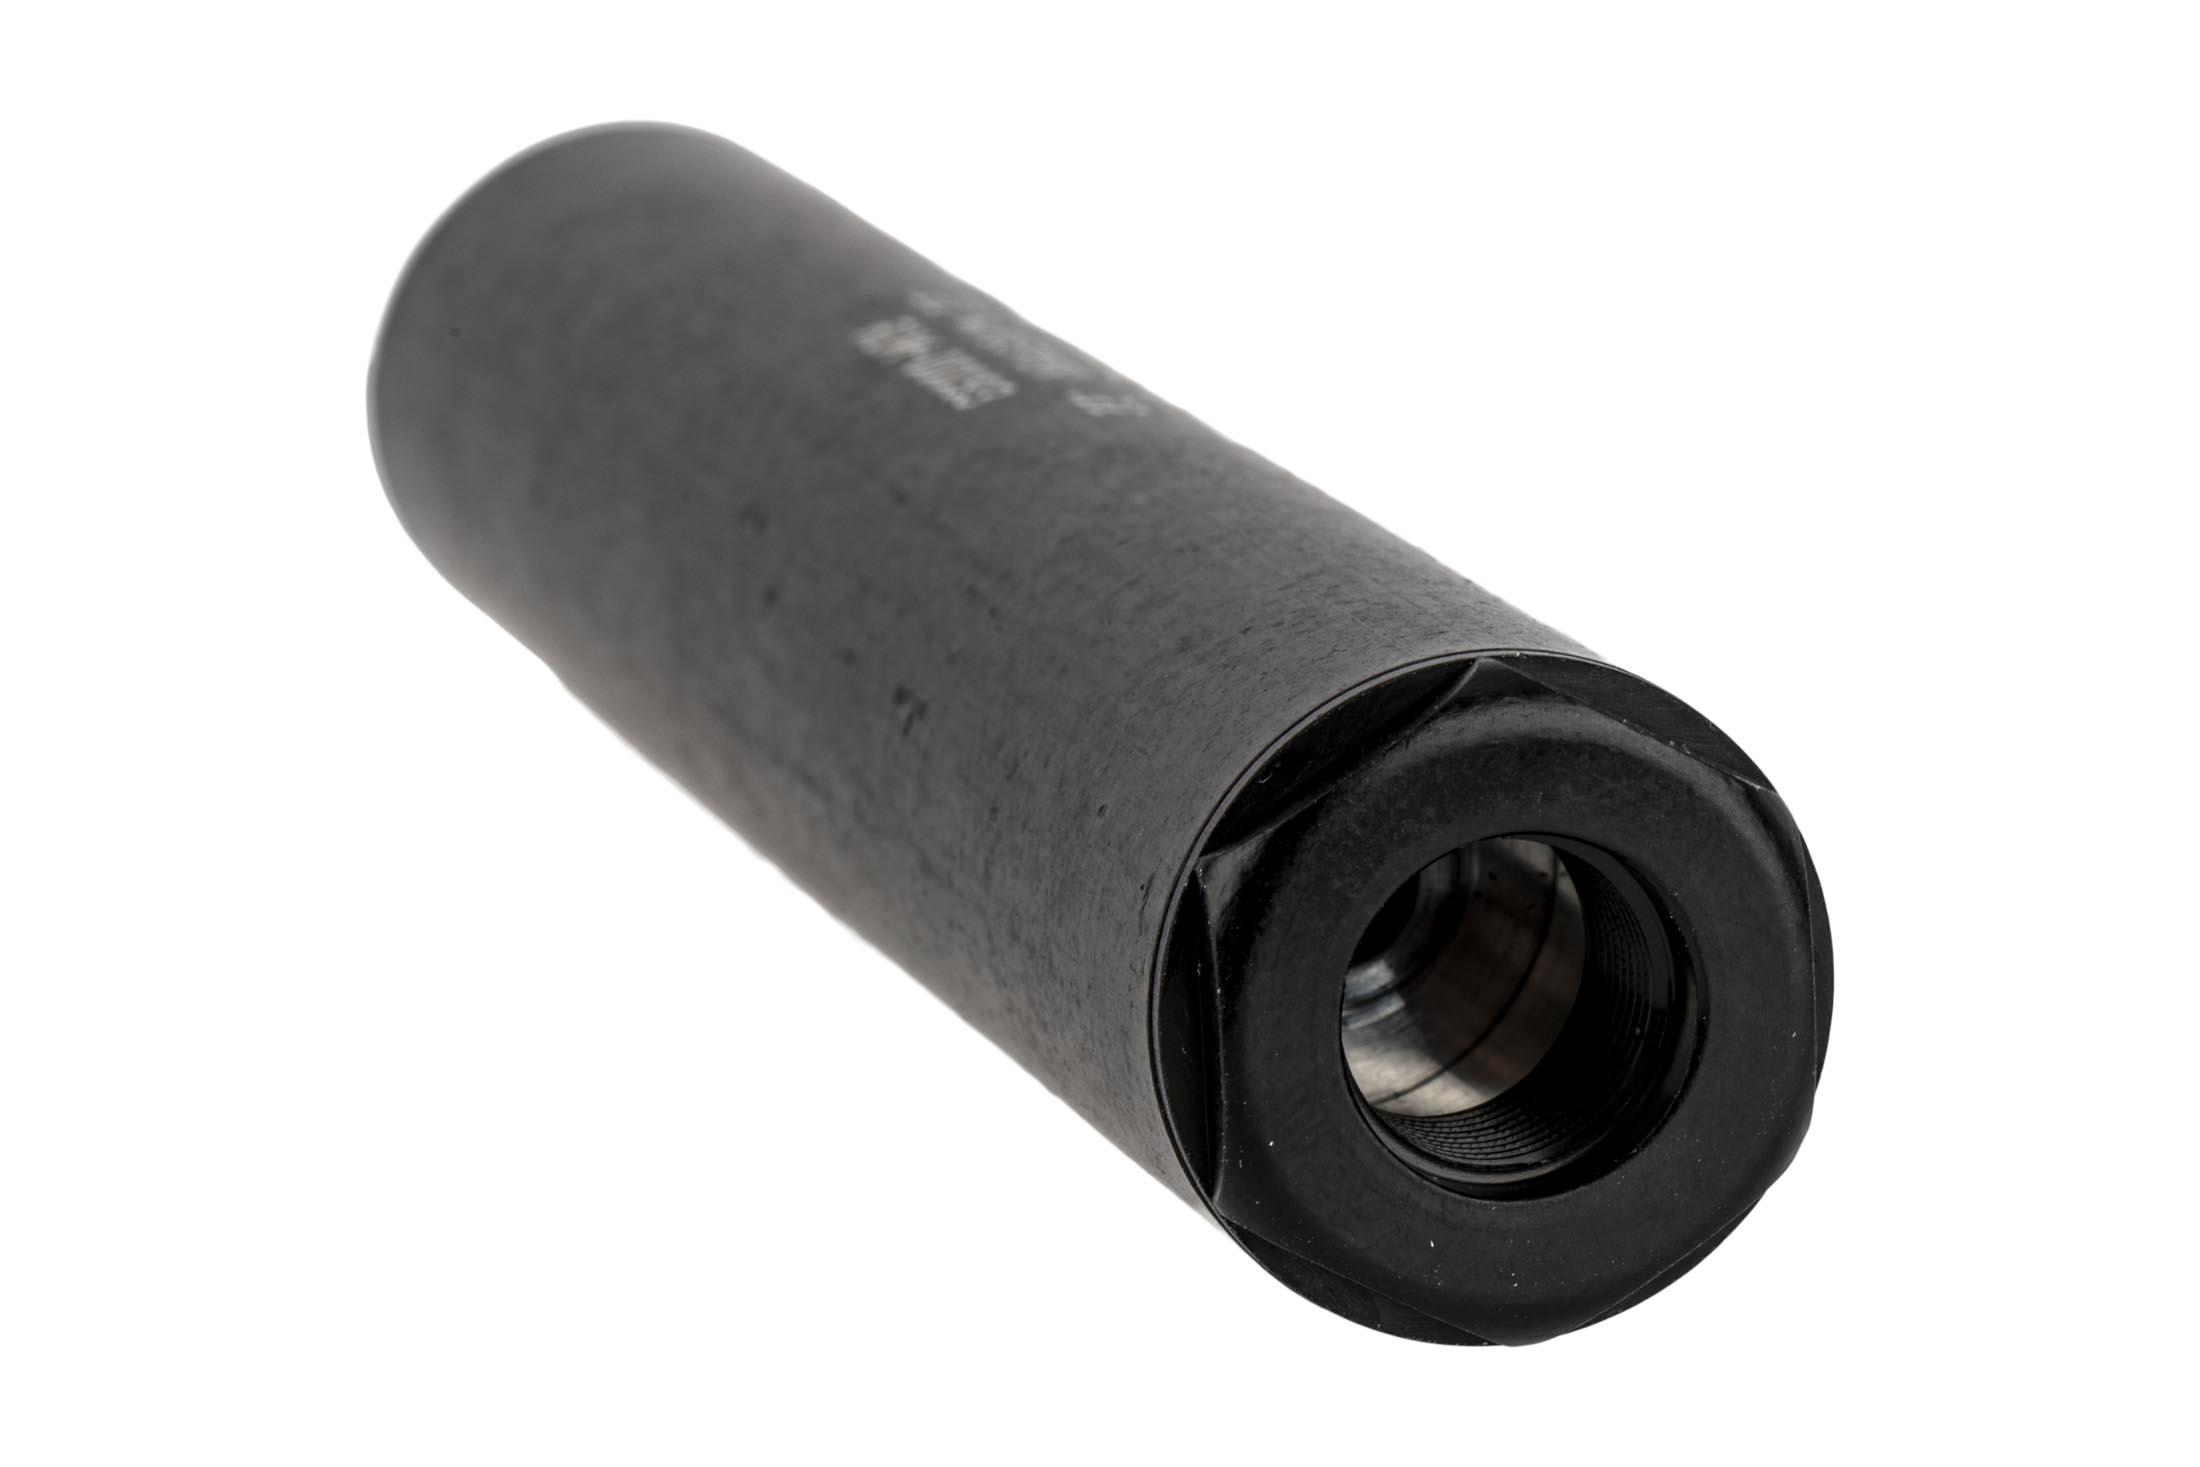 Wise Arms 5.75 rimfire suppressor is direct thread installation and handy user disassembly.